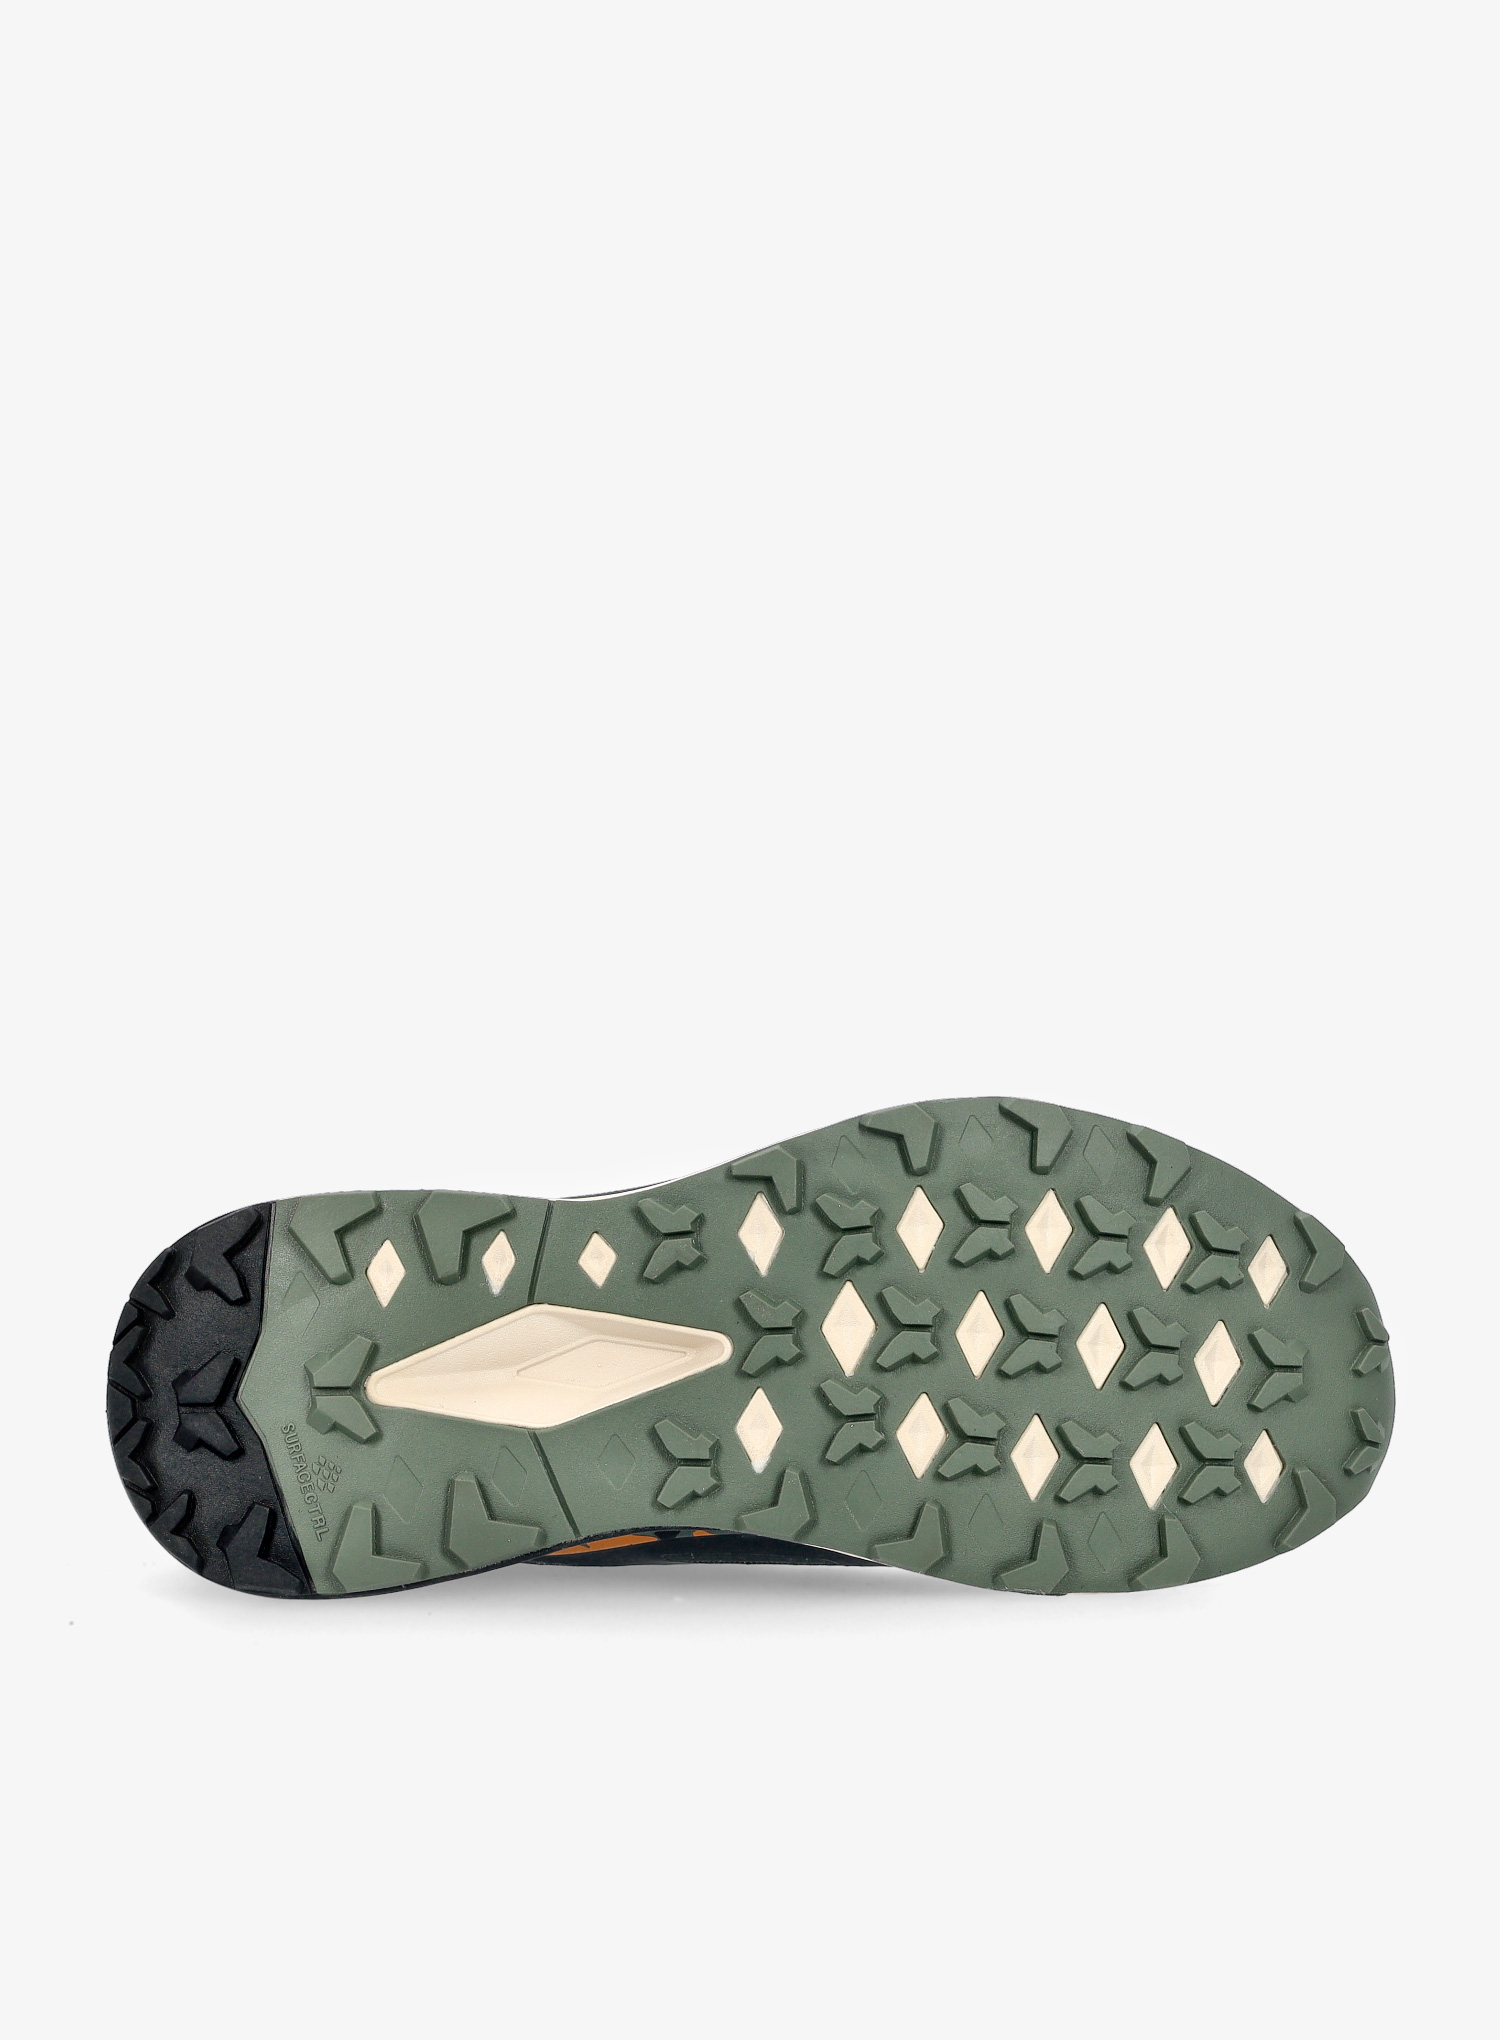 Buty trailowe The North Face Vectiv Infinite LTD - agave green/gold - zdjęcie nr. 2